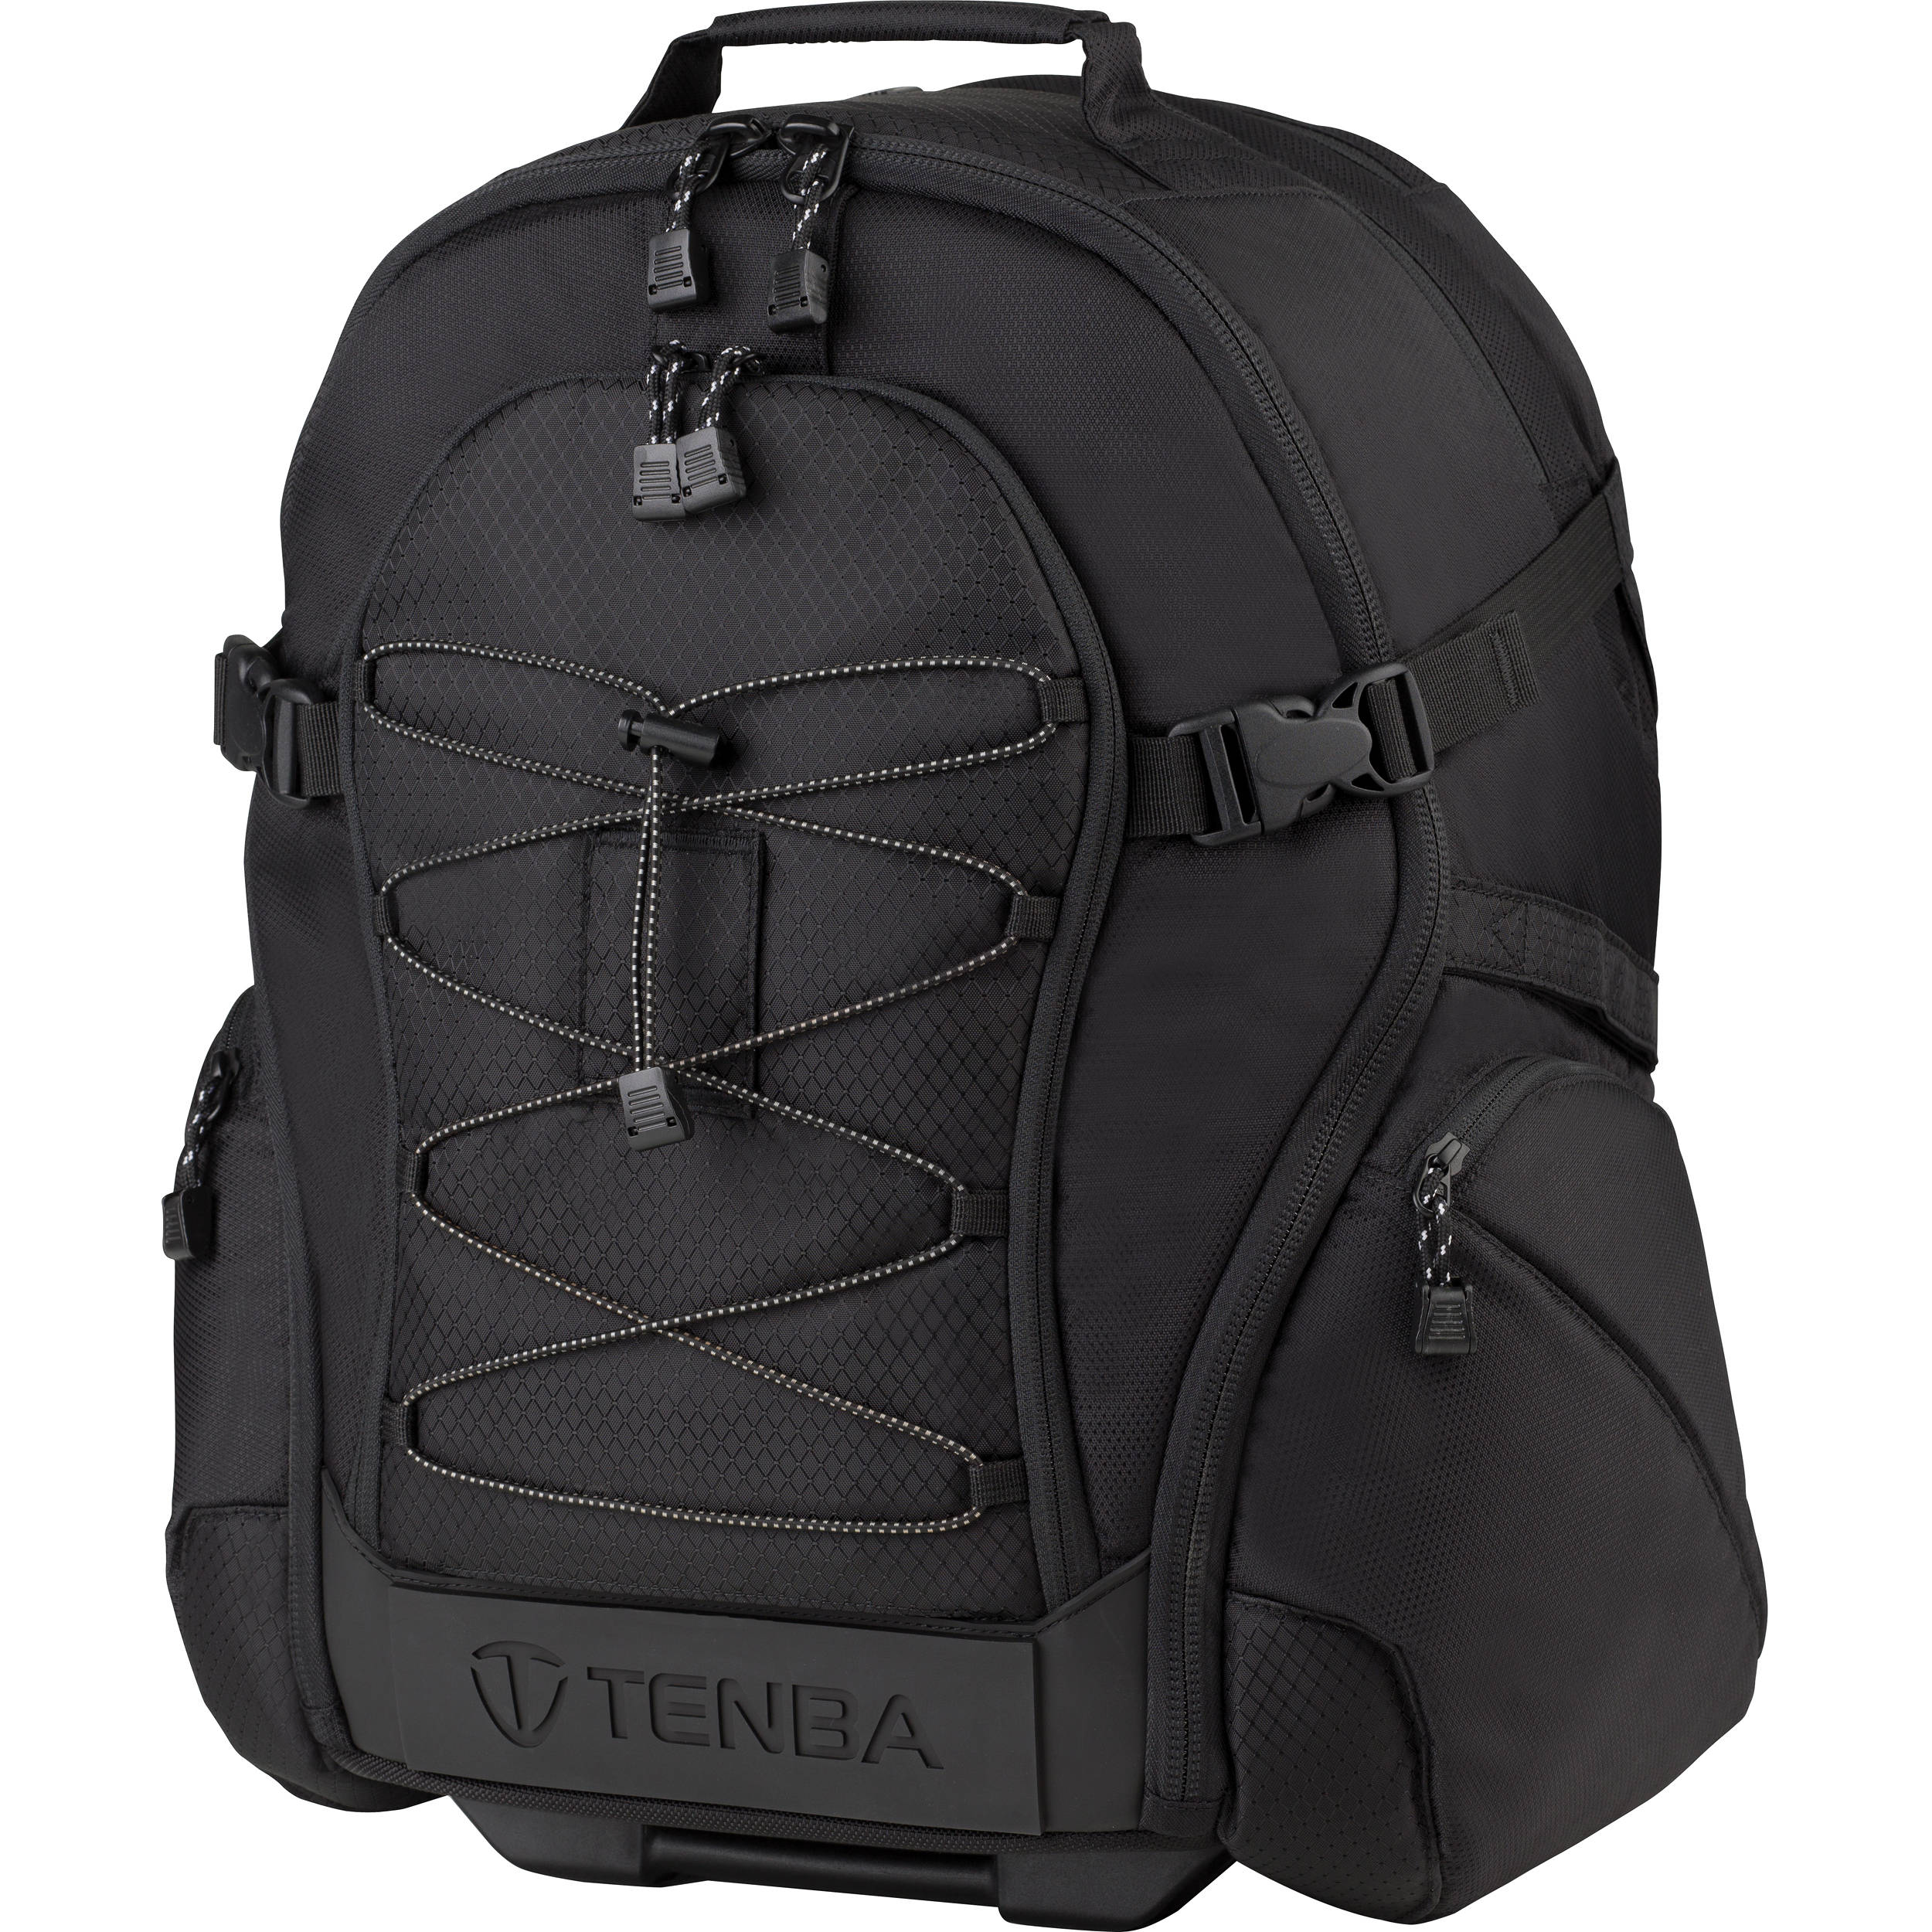 Tenba Shootout Rolling Backpack LE (Medium) 632-345 B&H Photo